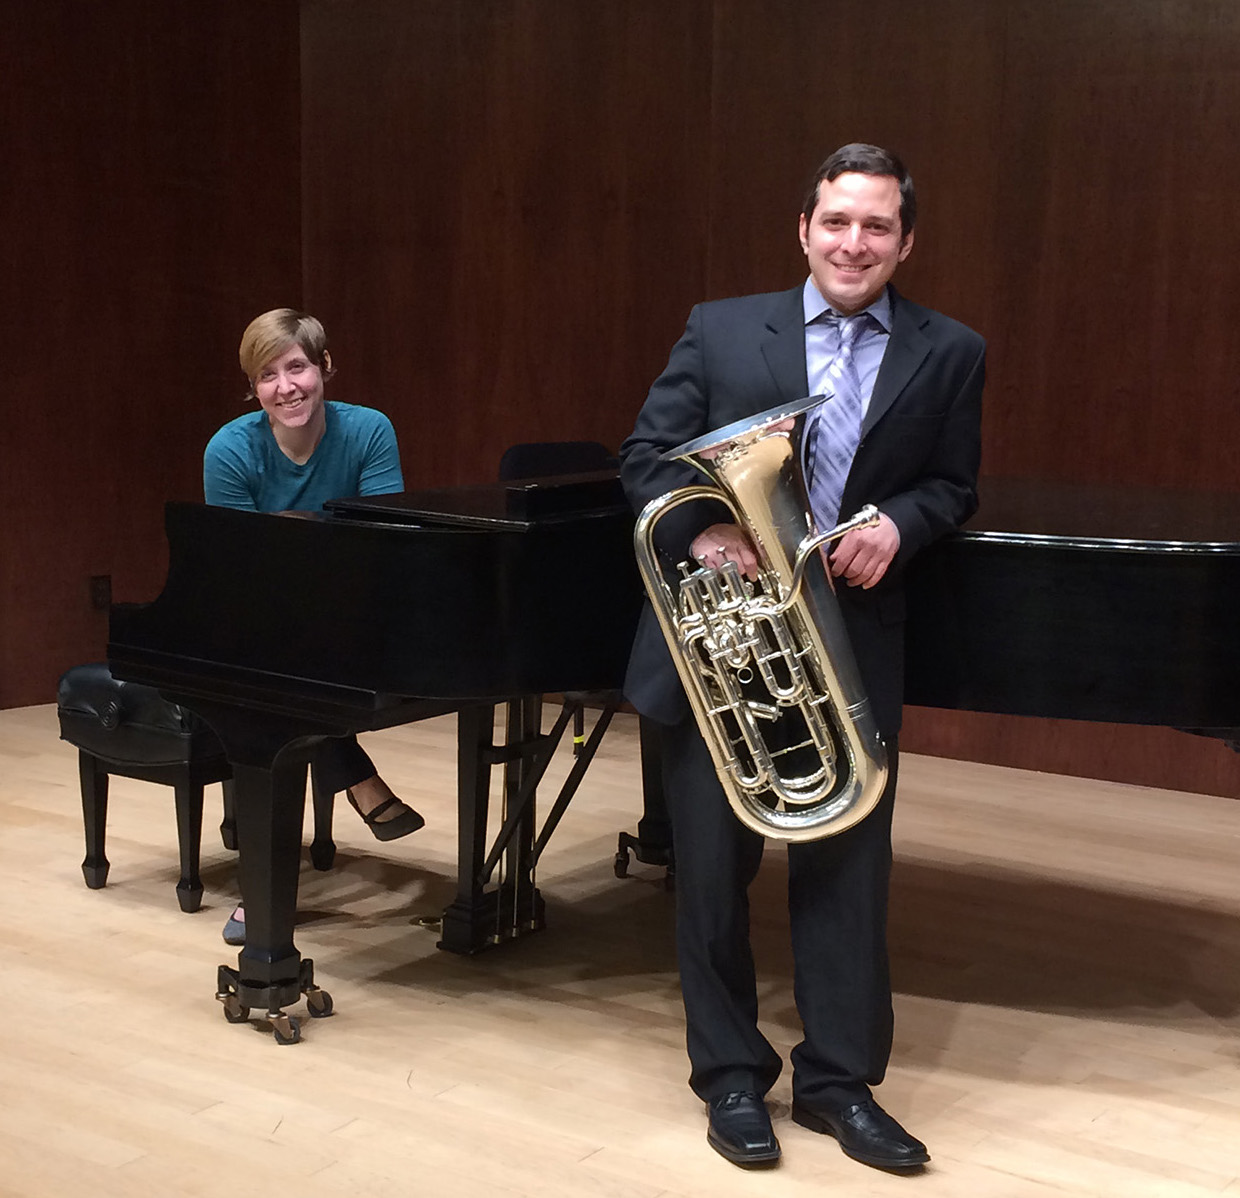 """SFA music faculty members Kayla Roth and Dr. Danny Chapa, along with Dr. J.D. Salas, associate professor of tuba and euphonium, will perform """"A Night of Song"""" at 6 p.m. Tuesday, Dec. 5, in the Music Recital Hall on the SFA campus."""